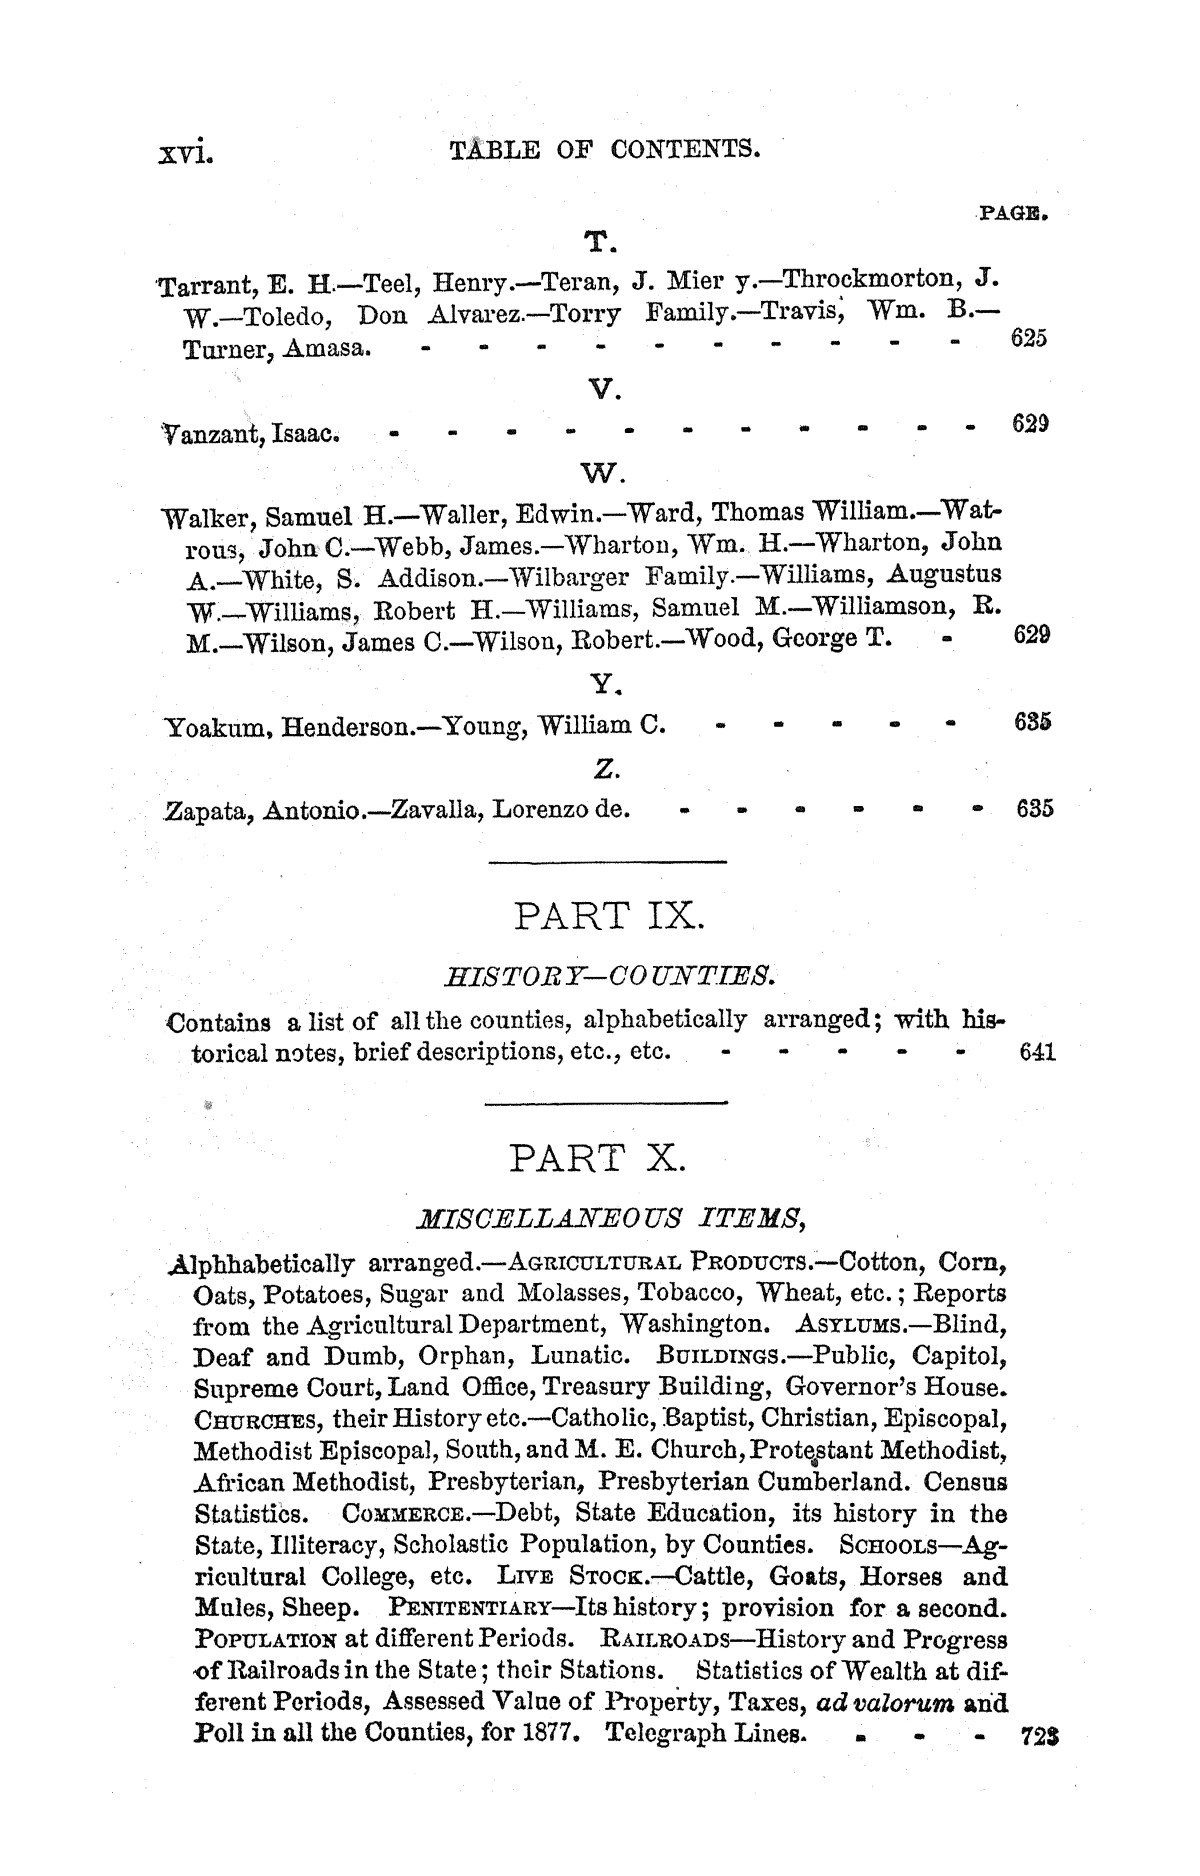 A pictorial history of Texas, from the earliest visits of European adventurers, to A.D. 1879. Embracing the periods of missions, colonization, the revolution the republic, and the state; also, a topographical description of the country ... together with its Indian tribes and their wars, and biographical sketches of hundreds of its leading historical characters. Also, a list of the countries, with historical and topical notes, and descriptions of the public institutions of the state.                                                                                                      [Sequence #]: 16 of 859